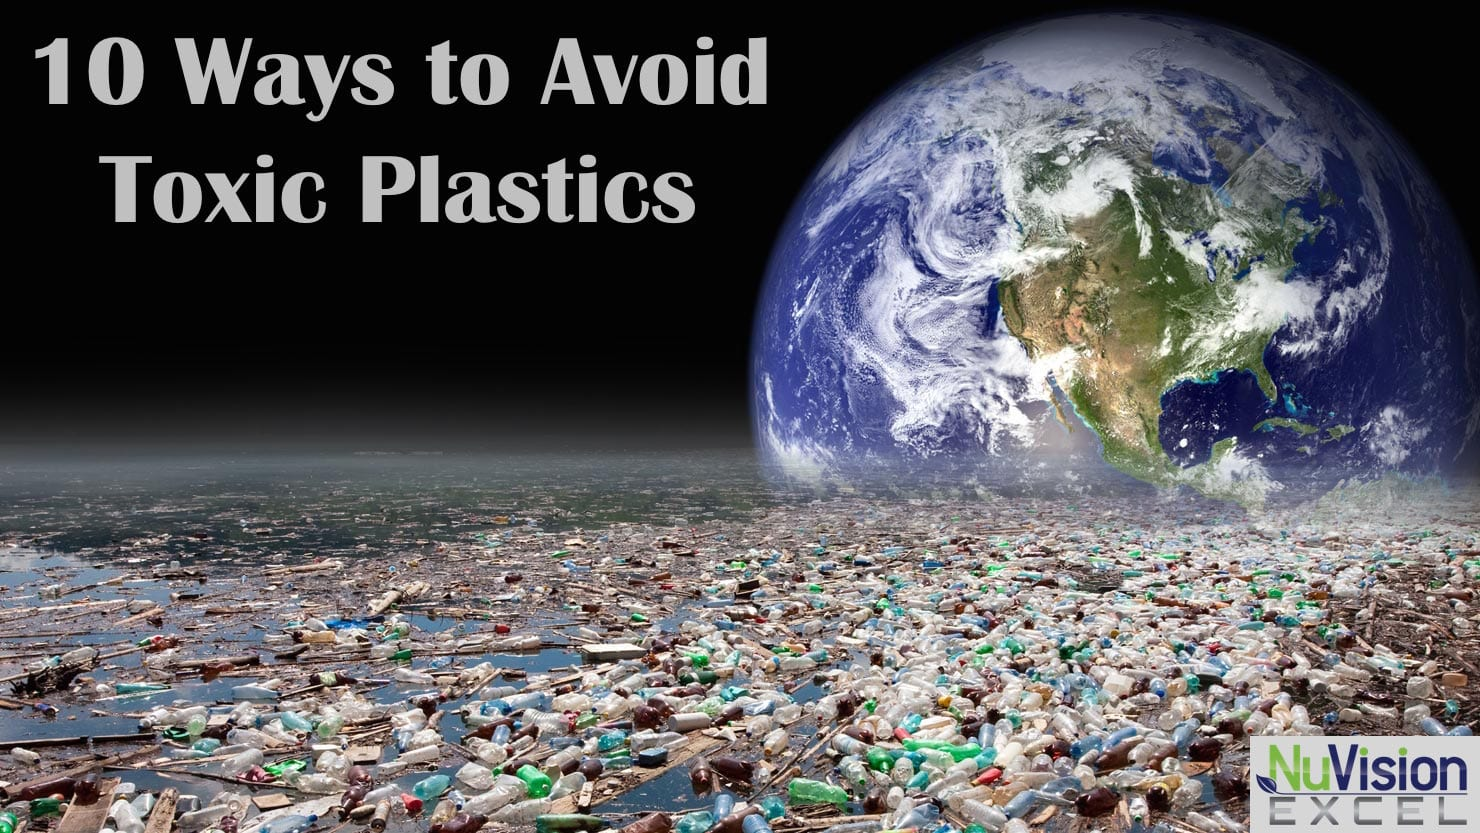 10 Ways to Avoid Toxic Plastics